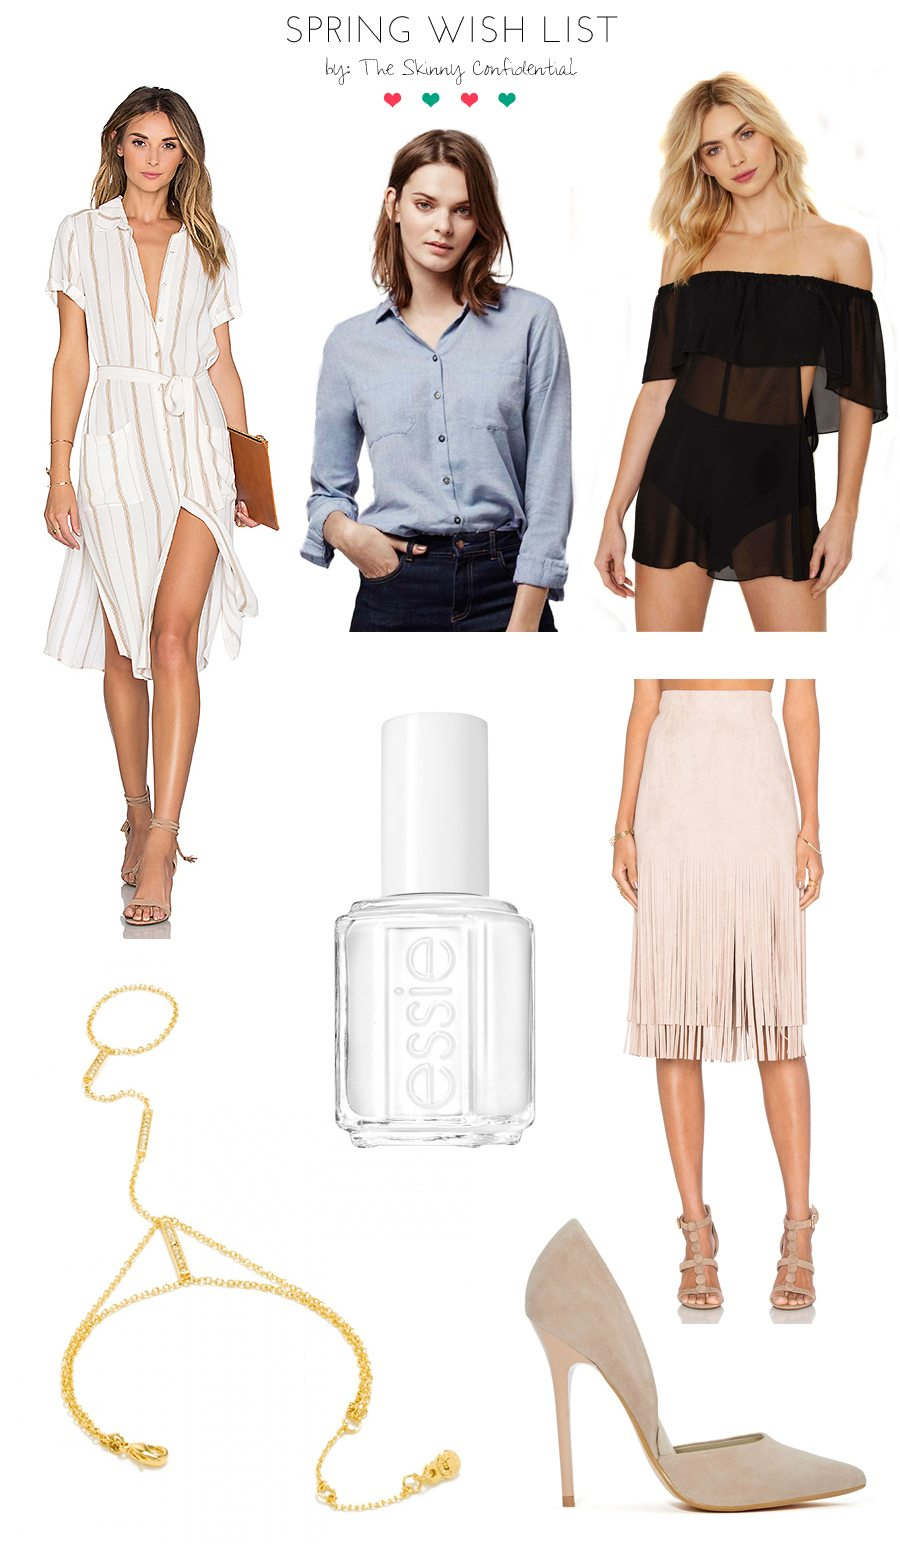 spring wish list | by the skinny confidential